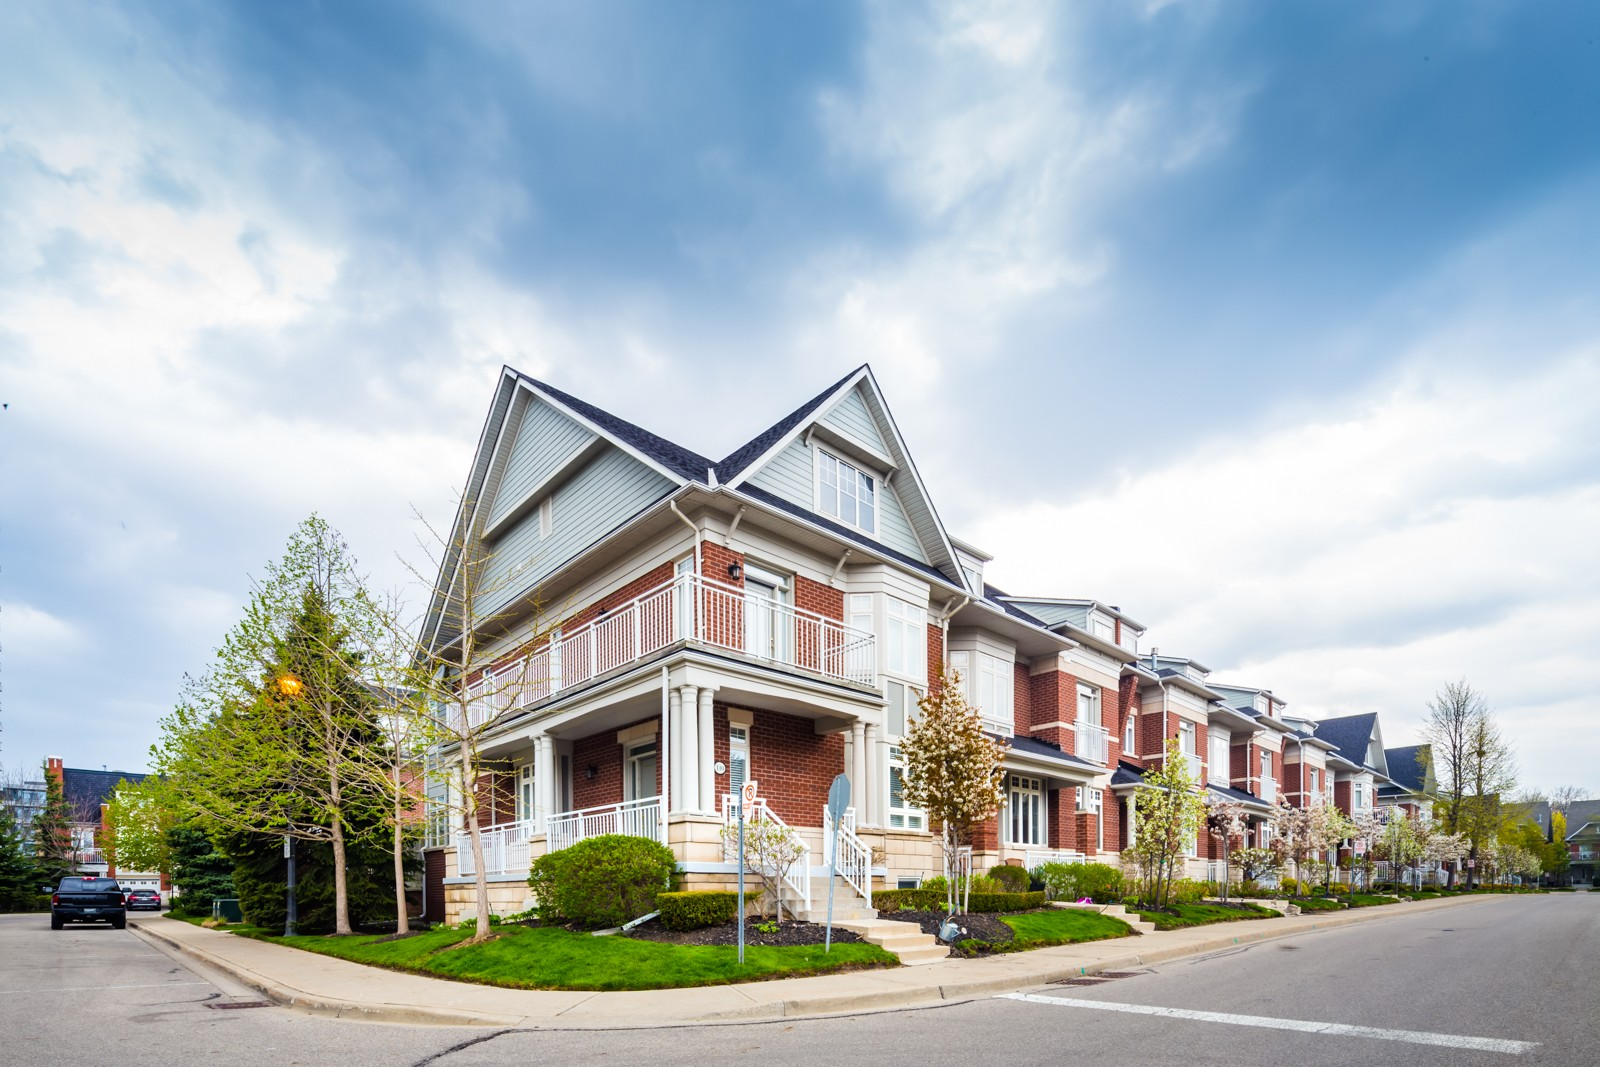 58 Compass Way Townhouses at 58 Compass Way, Mississauga 1